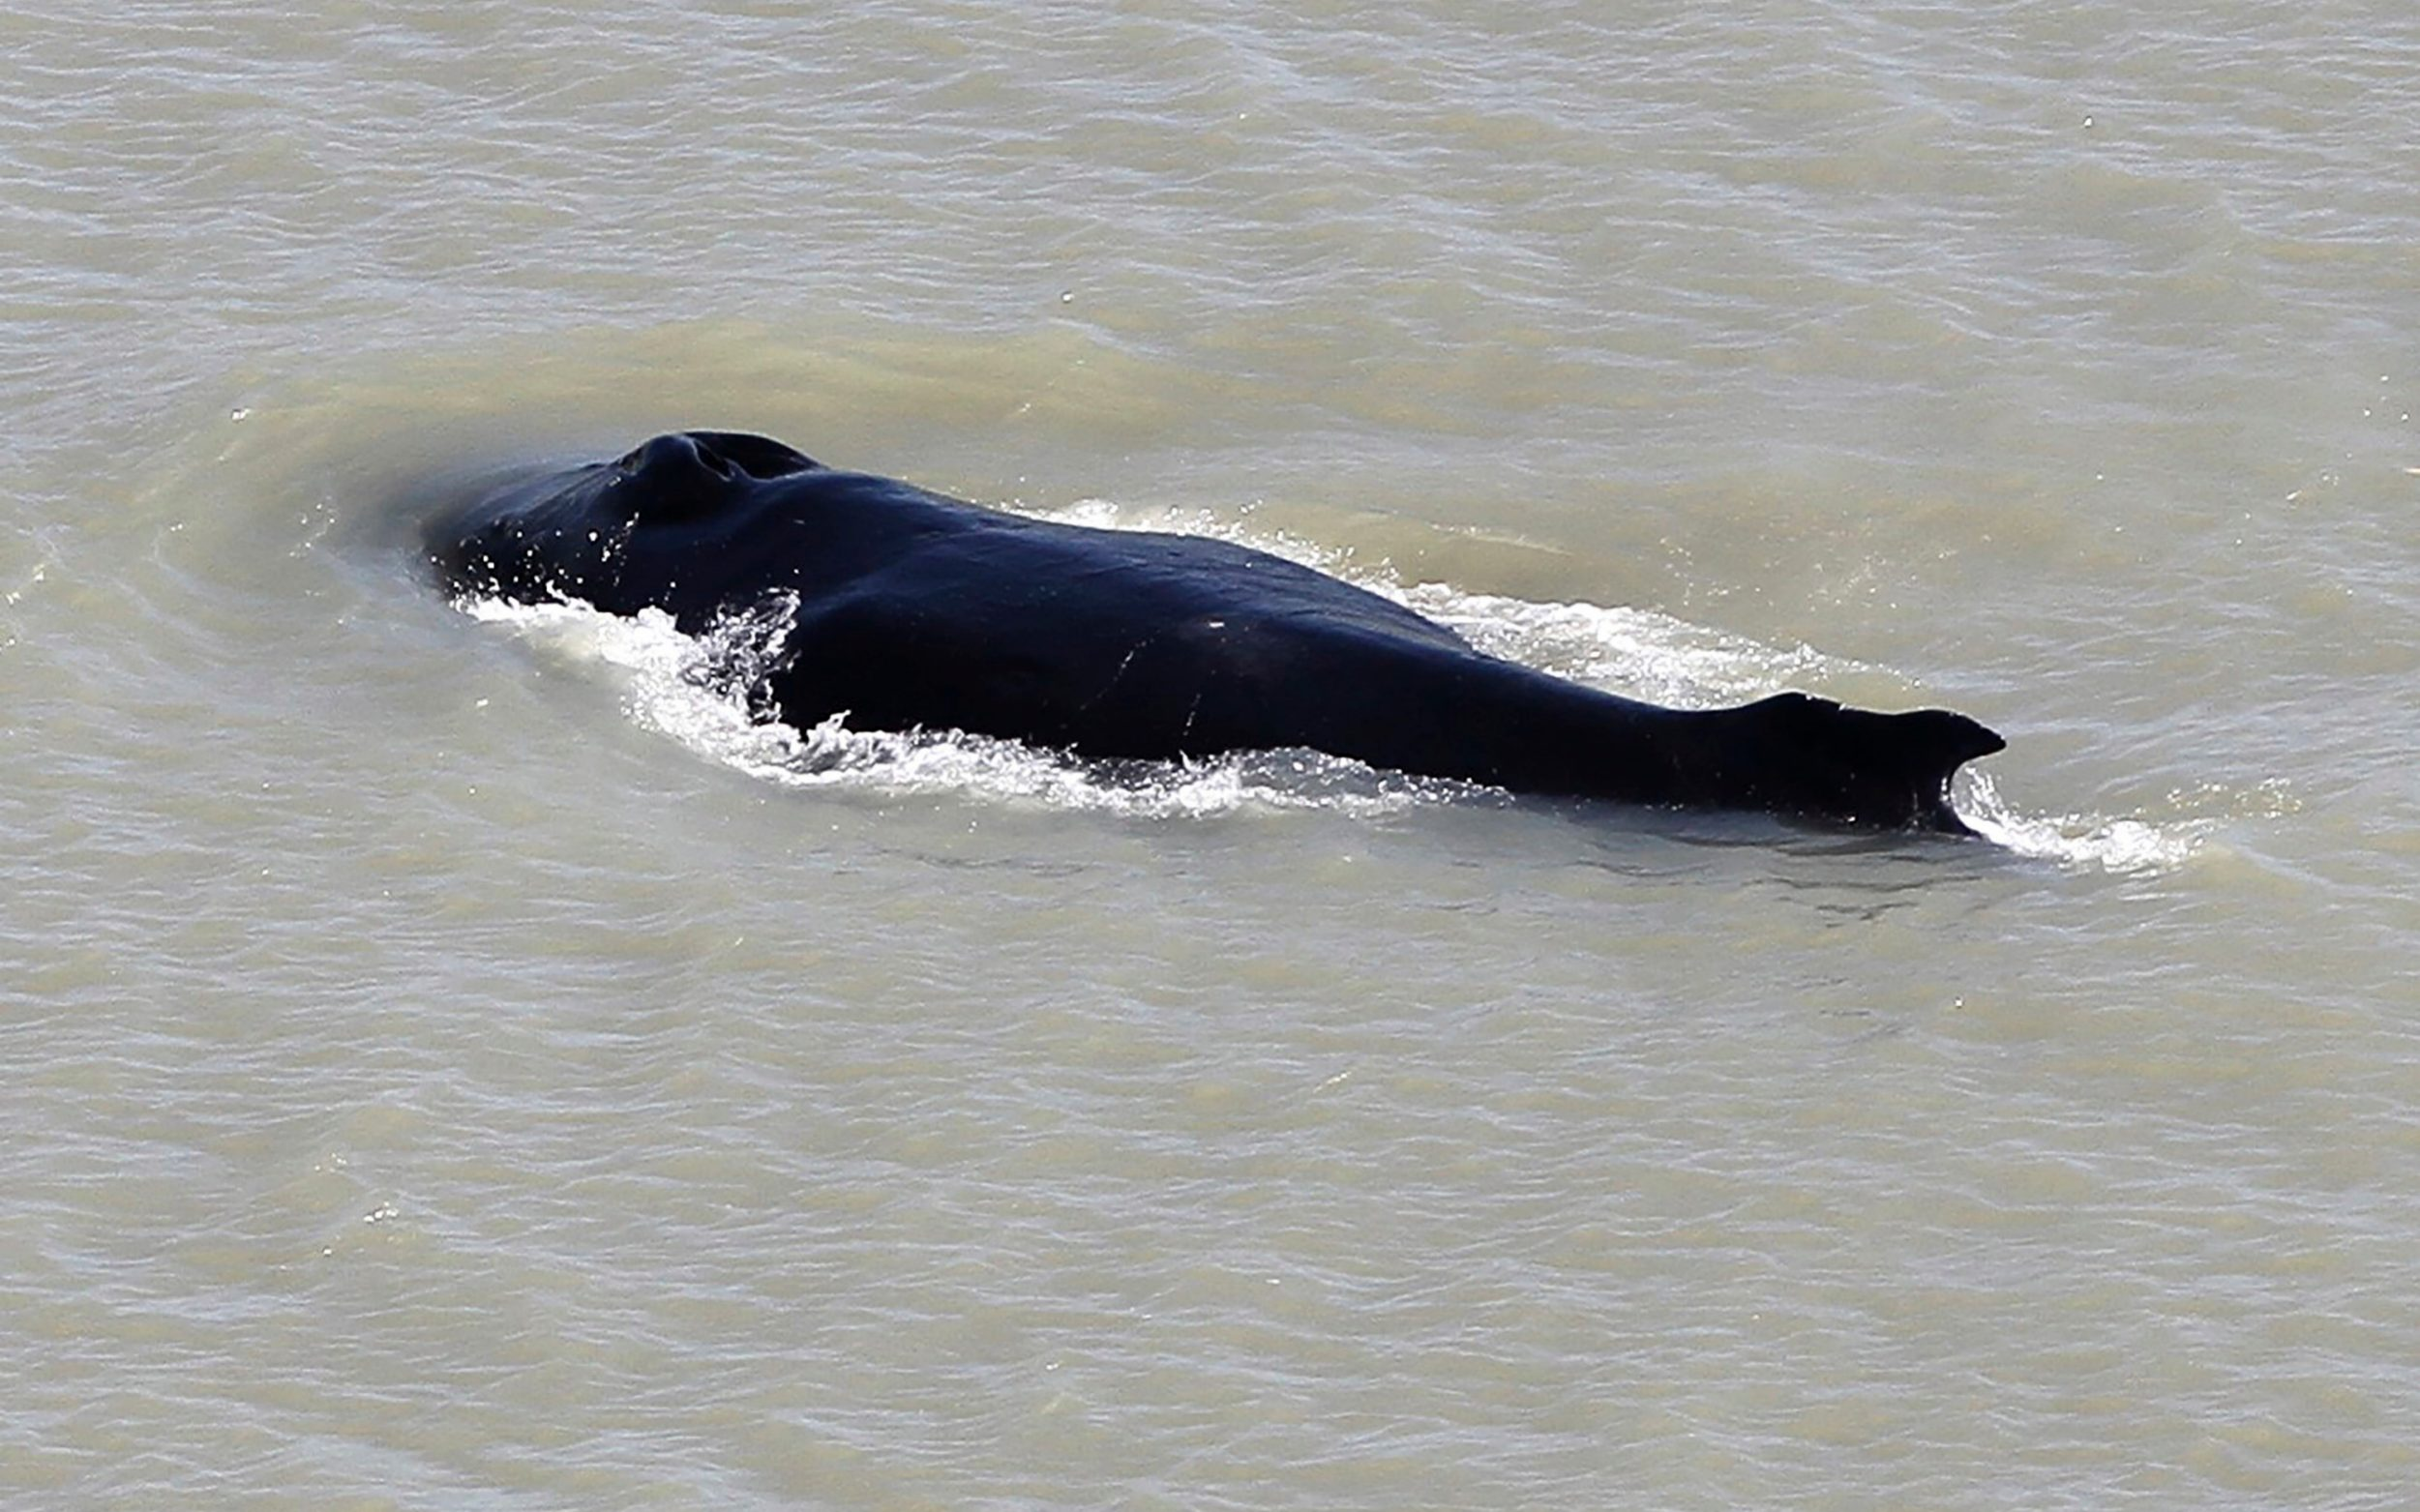 Australian marine authorities left baffled after discovering humpback whale in shark-infested river